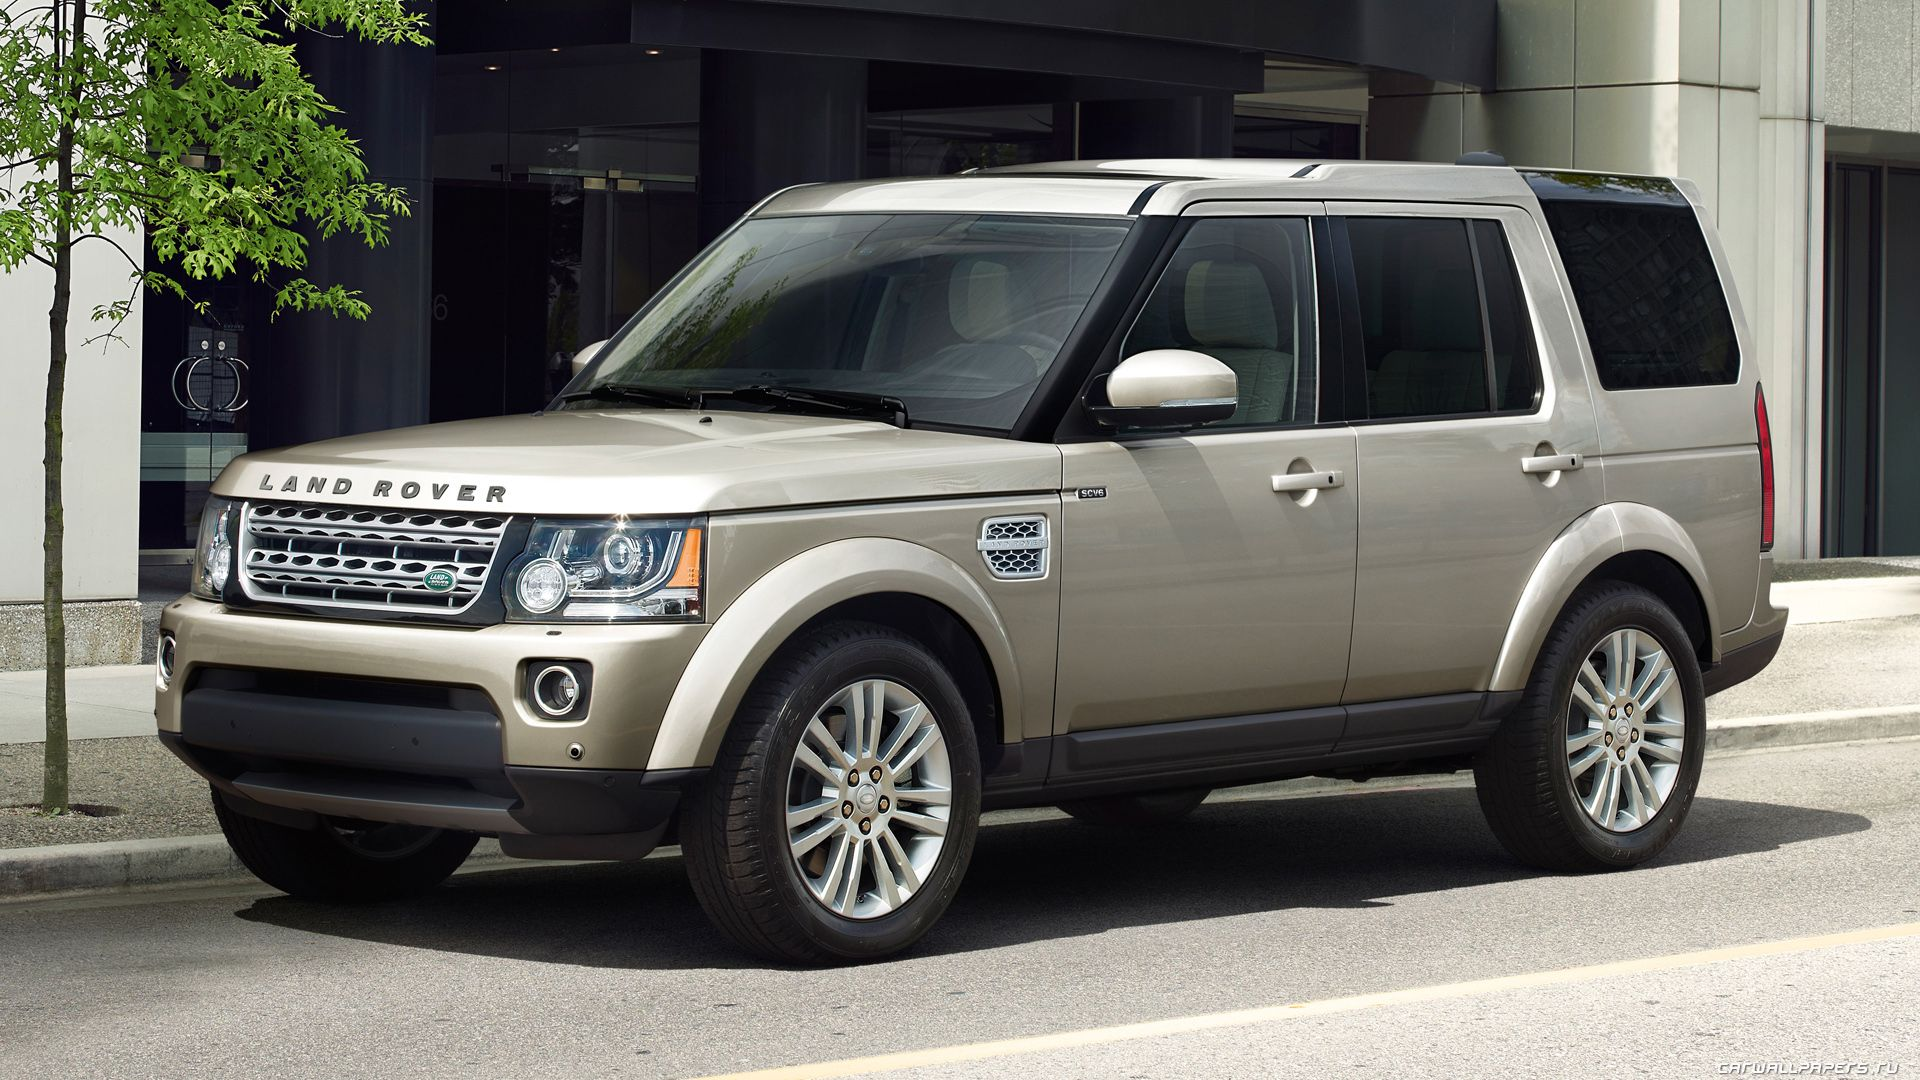 rover expert used review of cost landrover vehicle land